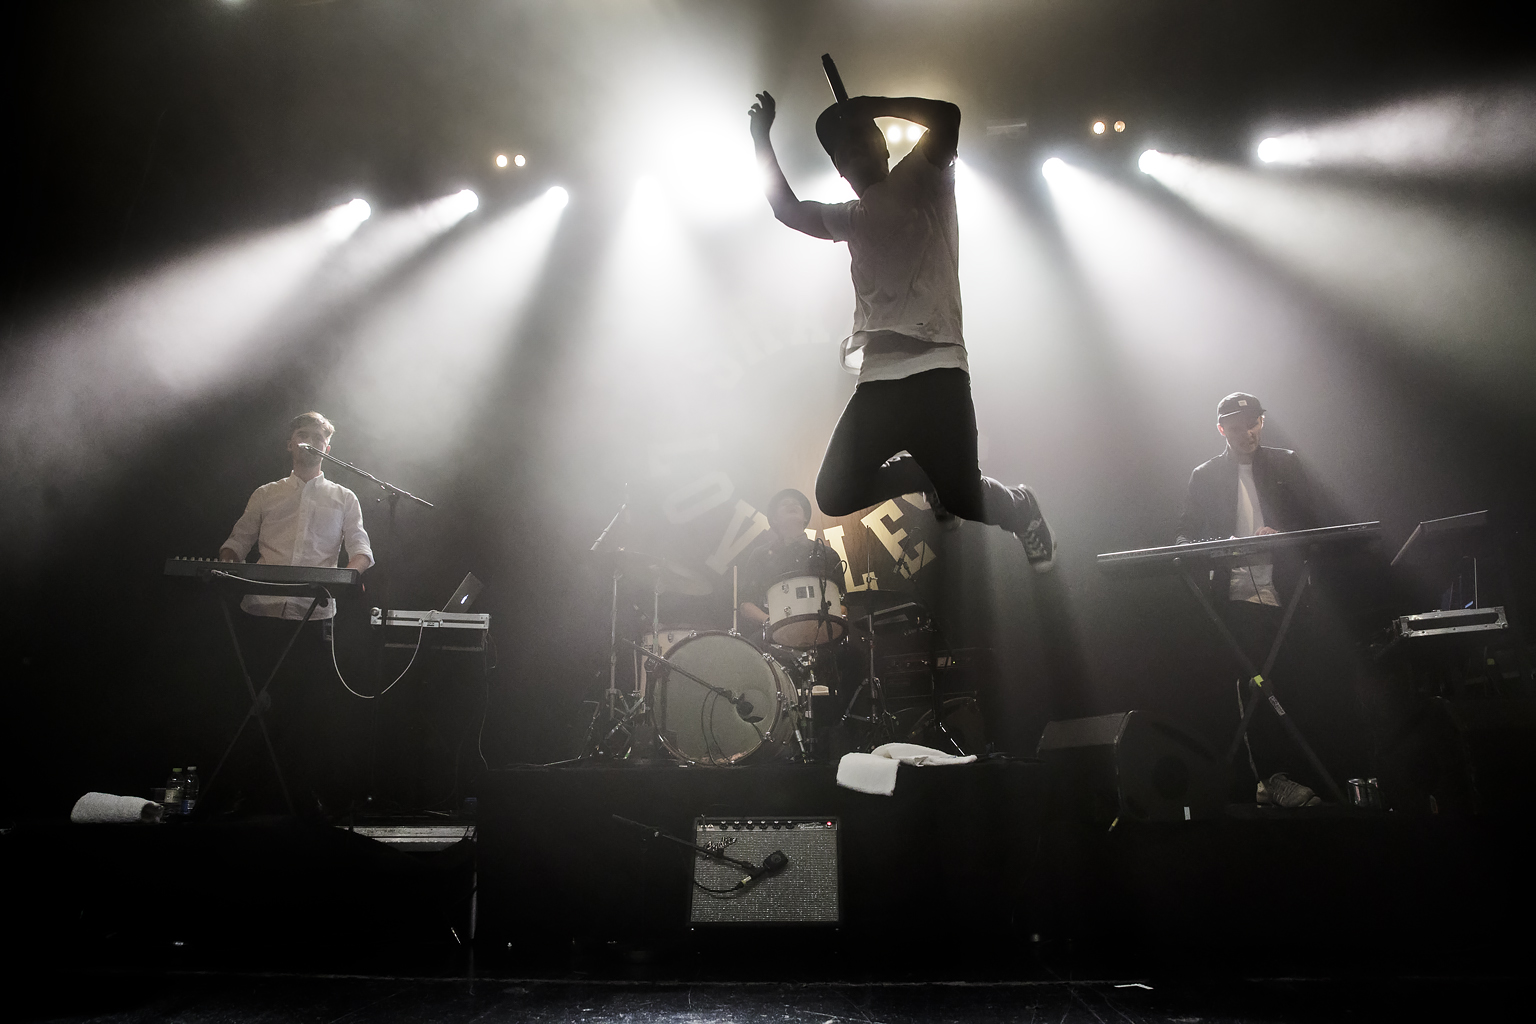 PHOTOS / PETER TROEST